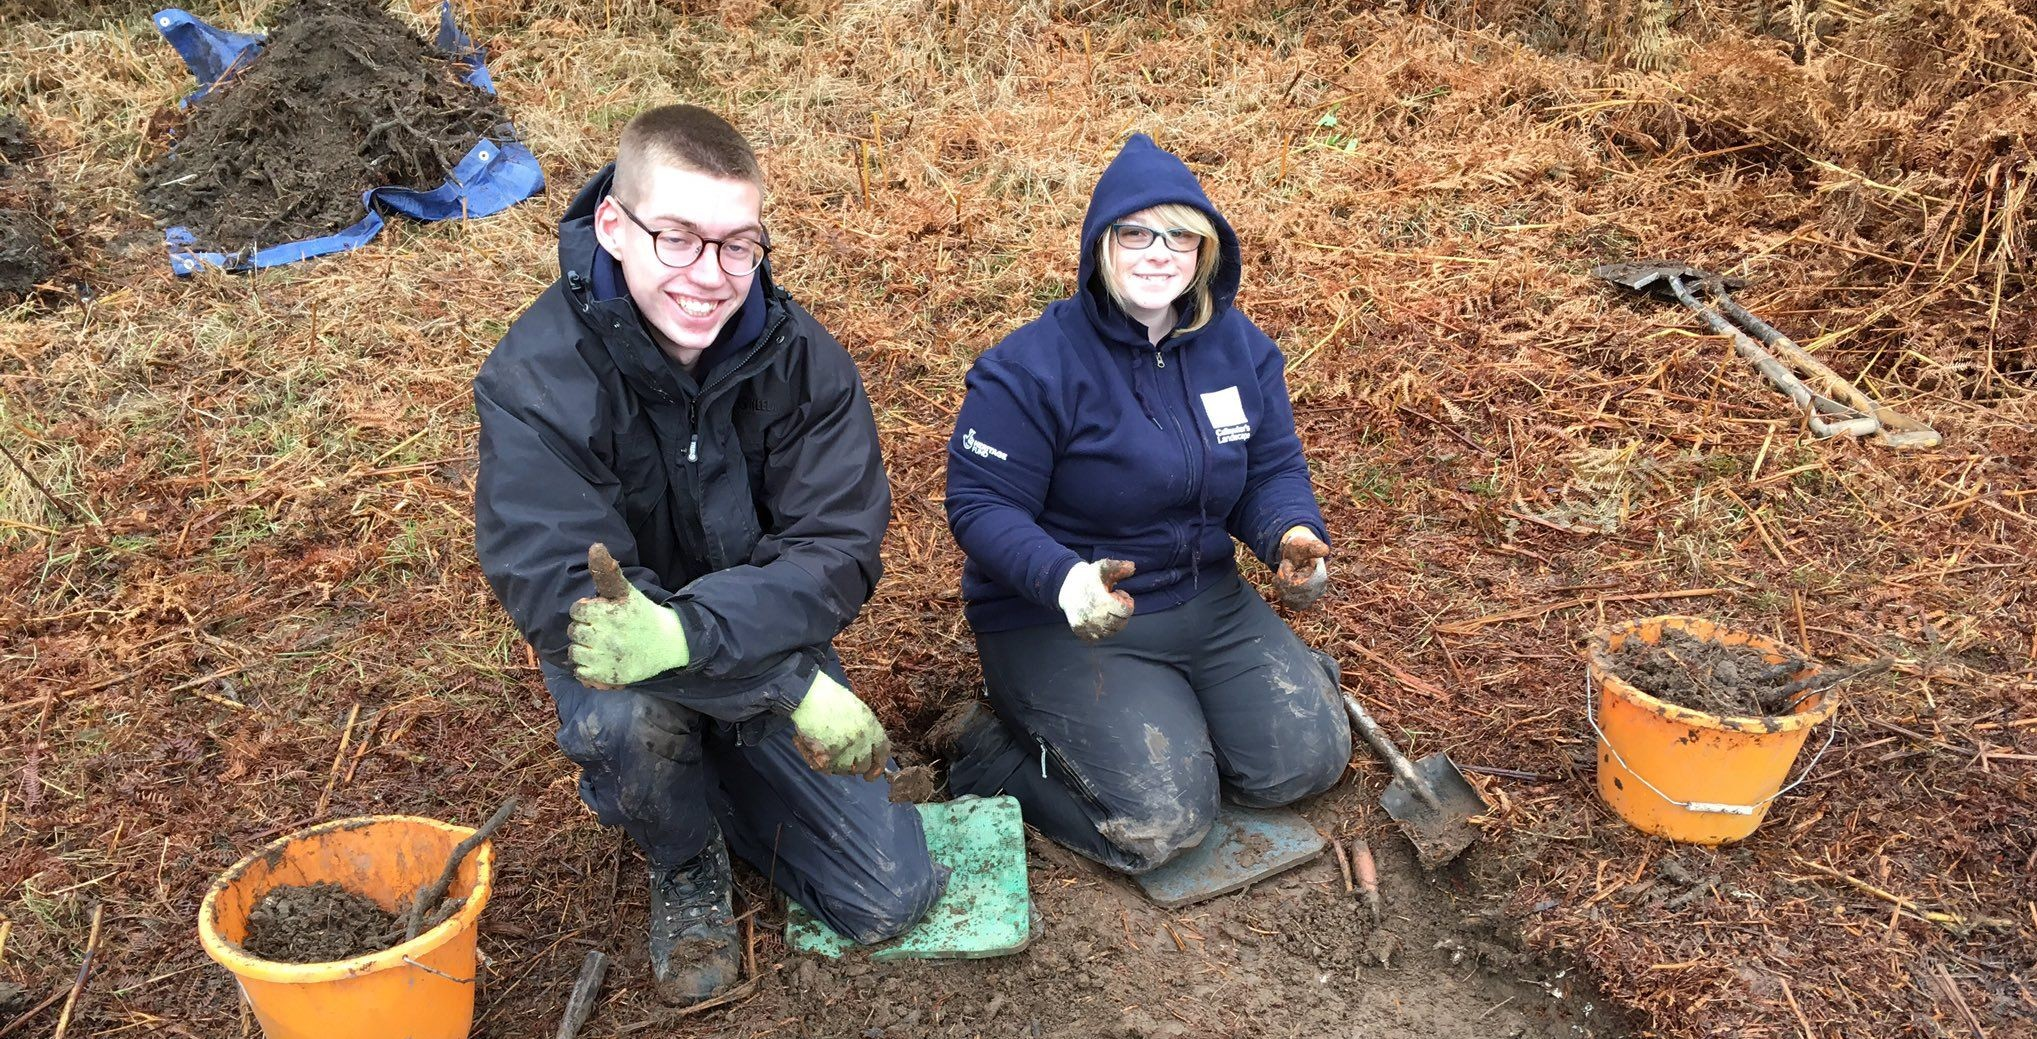 two-young-people-taking-part-in-an-archaeological-excavation